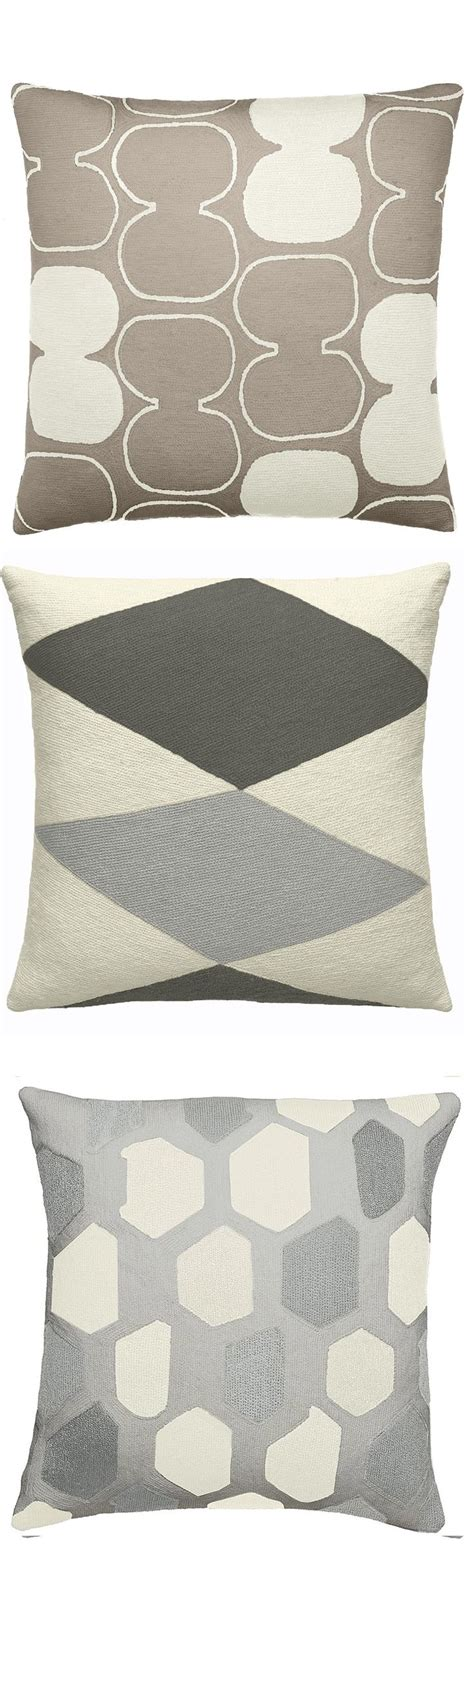 decorative pillows for grey sofa 17 best images about gray pillows on sofa